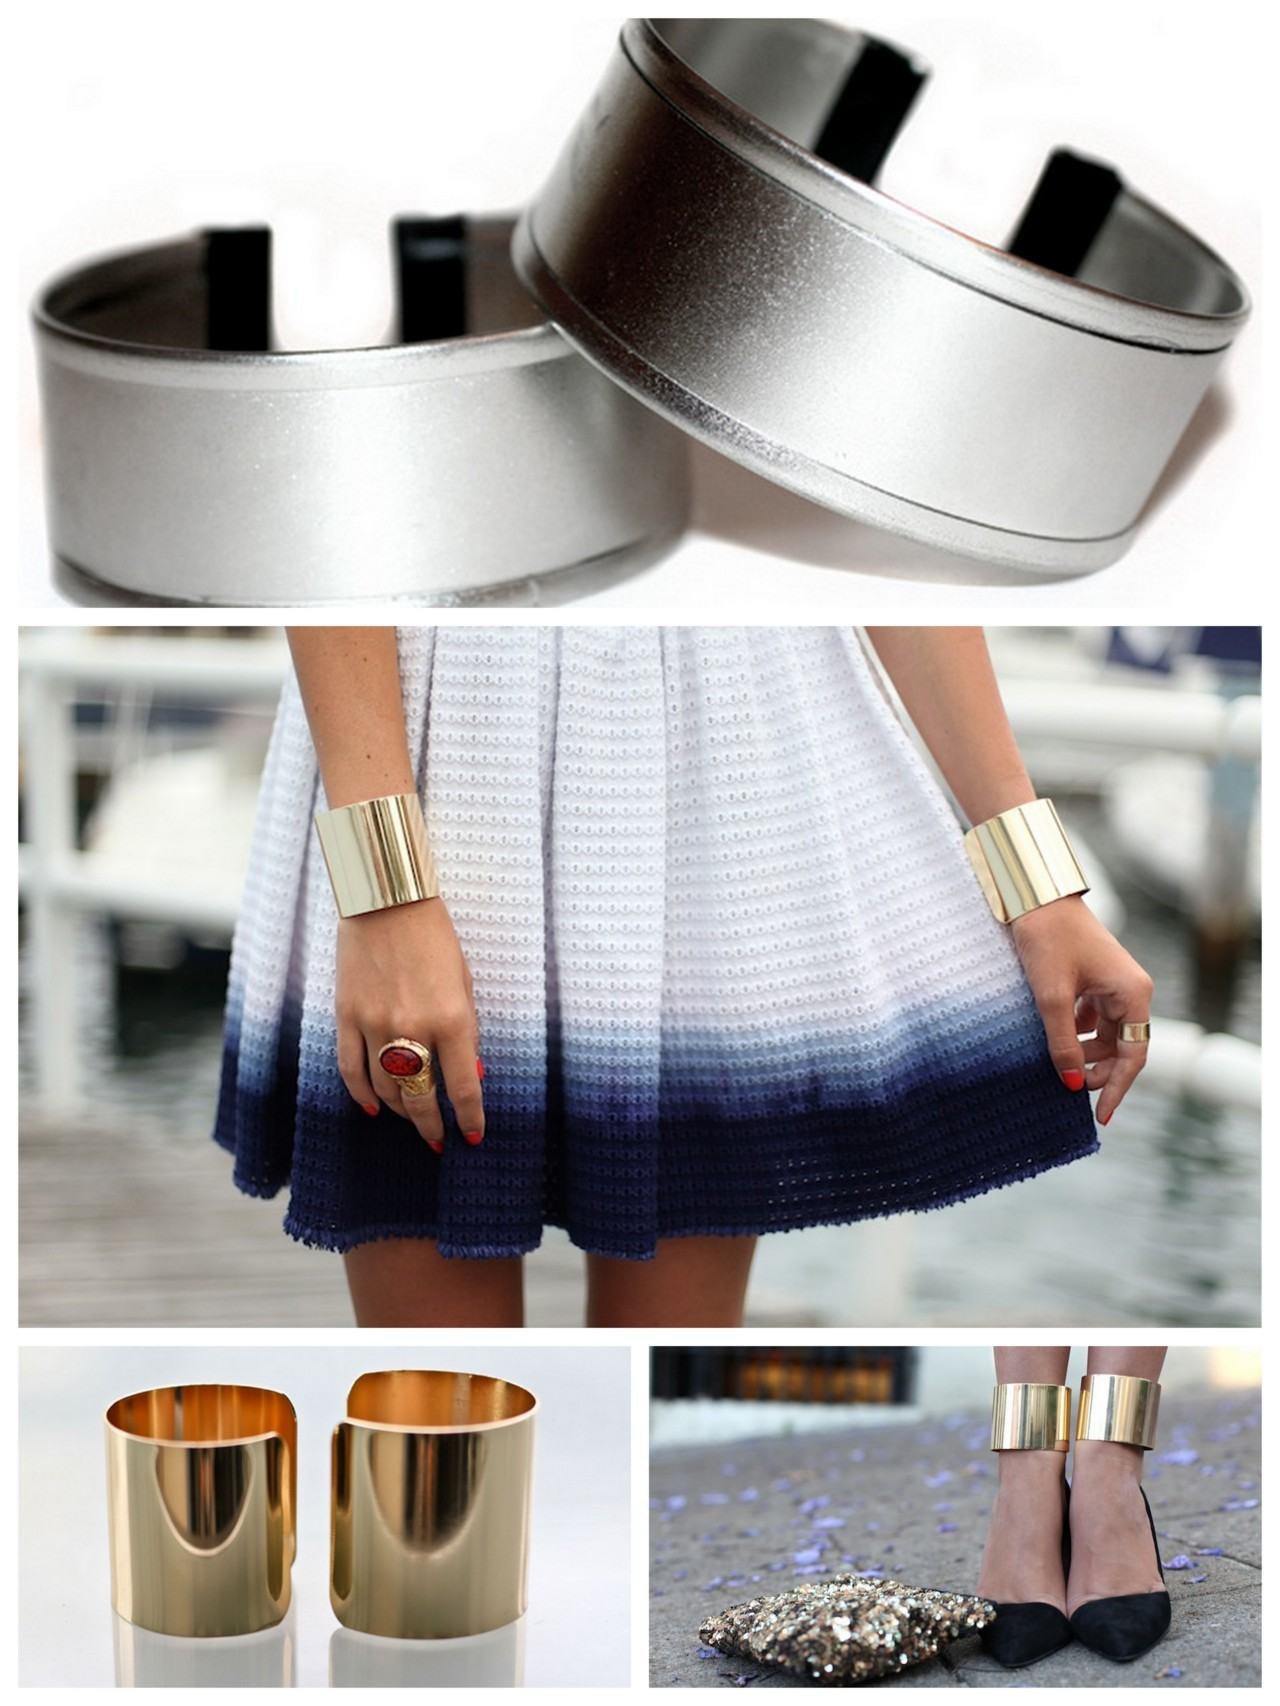 truebluemeandyou:  truebluemeandyou: DIY Double Wrist or Ankle Cuffs from Cookie Cutters. Reblogging with new links to ASOS cuffs (sold out in lots of countries but not the US): ASOS $24.86 Rose Gold Double Cuffs here, ASOS $24.86 Gold Double Cuffs here, and ASOS $24.86 Silver Double Cuffs here.  DIY Double Wrist or Ankle Cuffs from Cookie Cutters. Top Photo: DIY Really clever tutorial from I Spy DIY here. *I think the gold cuffs from ASOS for $24.86 (for 2) that can be worn on wrists or ankles are a good deal here. Photo Credits. TOP: DIY, MIDDLE: The Manor here wearing ASOS Gold Cuffs, Bottom LEFT: ASOS Gold Cuffs here,  Bottom RIGHT: tuula wearing ASOS Gold cuffs on her ankles here. ASOS 2 pack Gold Cuffs available for $28 here that can be worn on wrists or ankles.